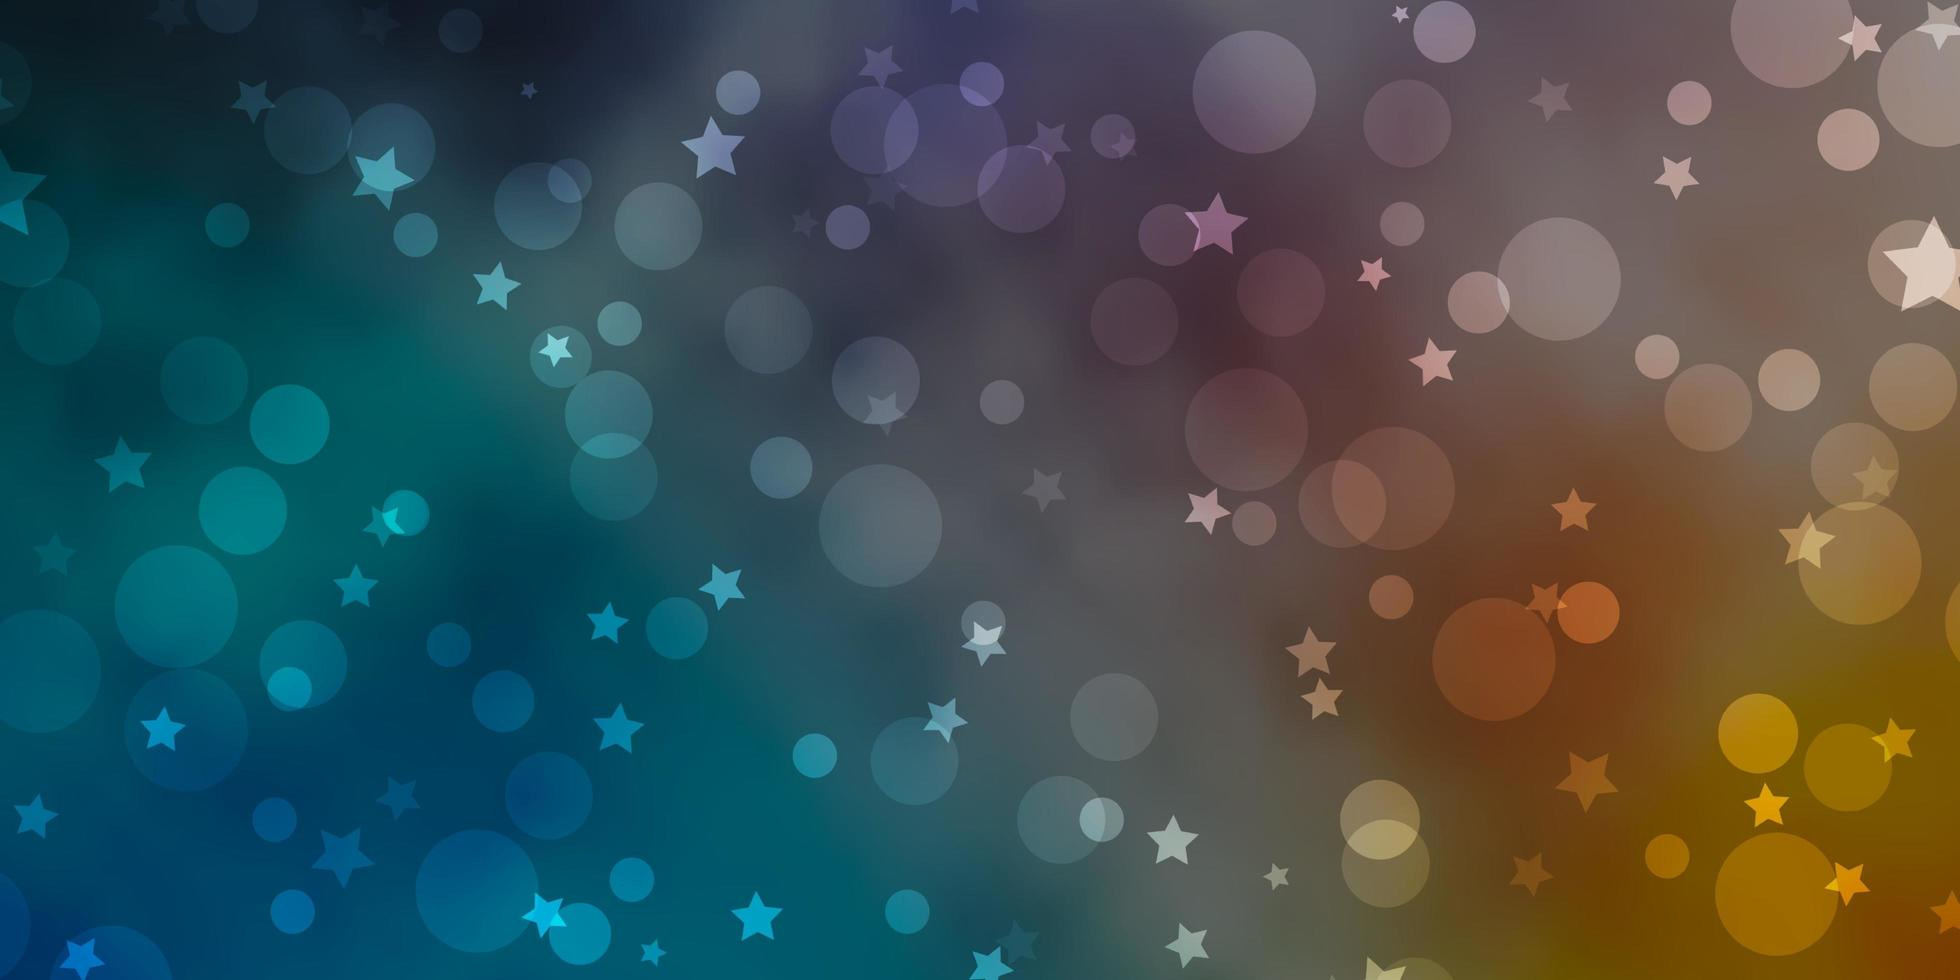 Blue, Yellow background with circles, stars. vector